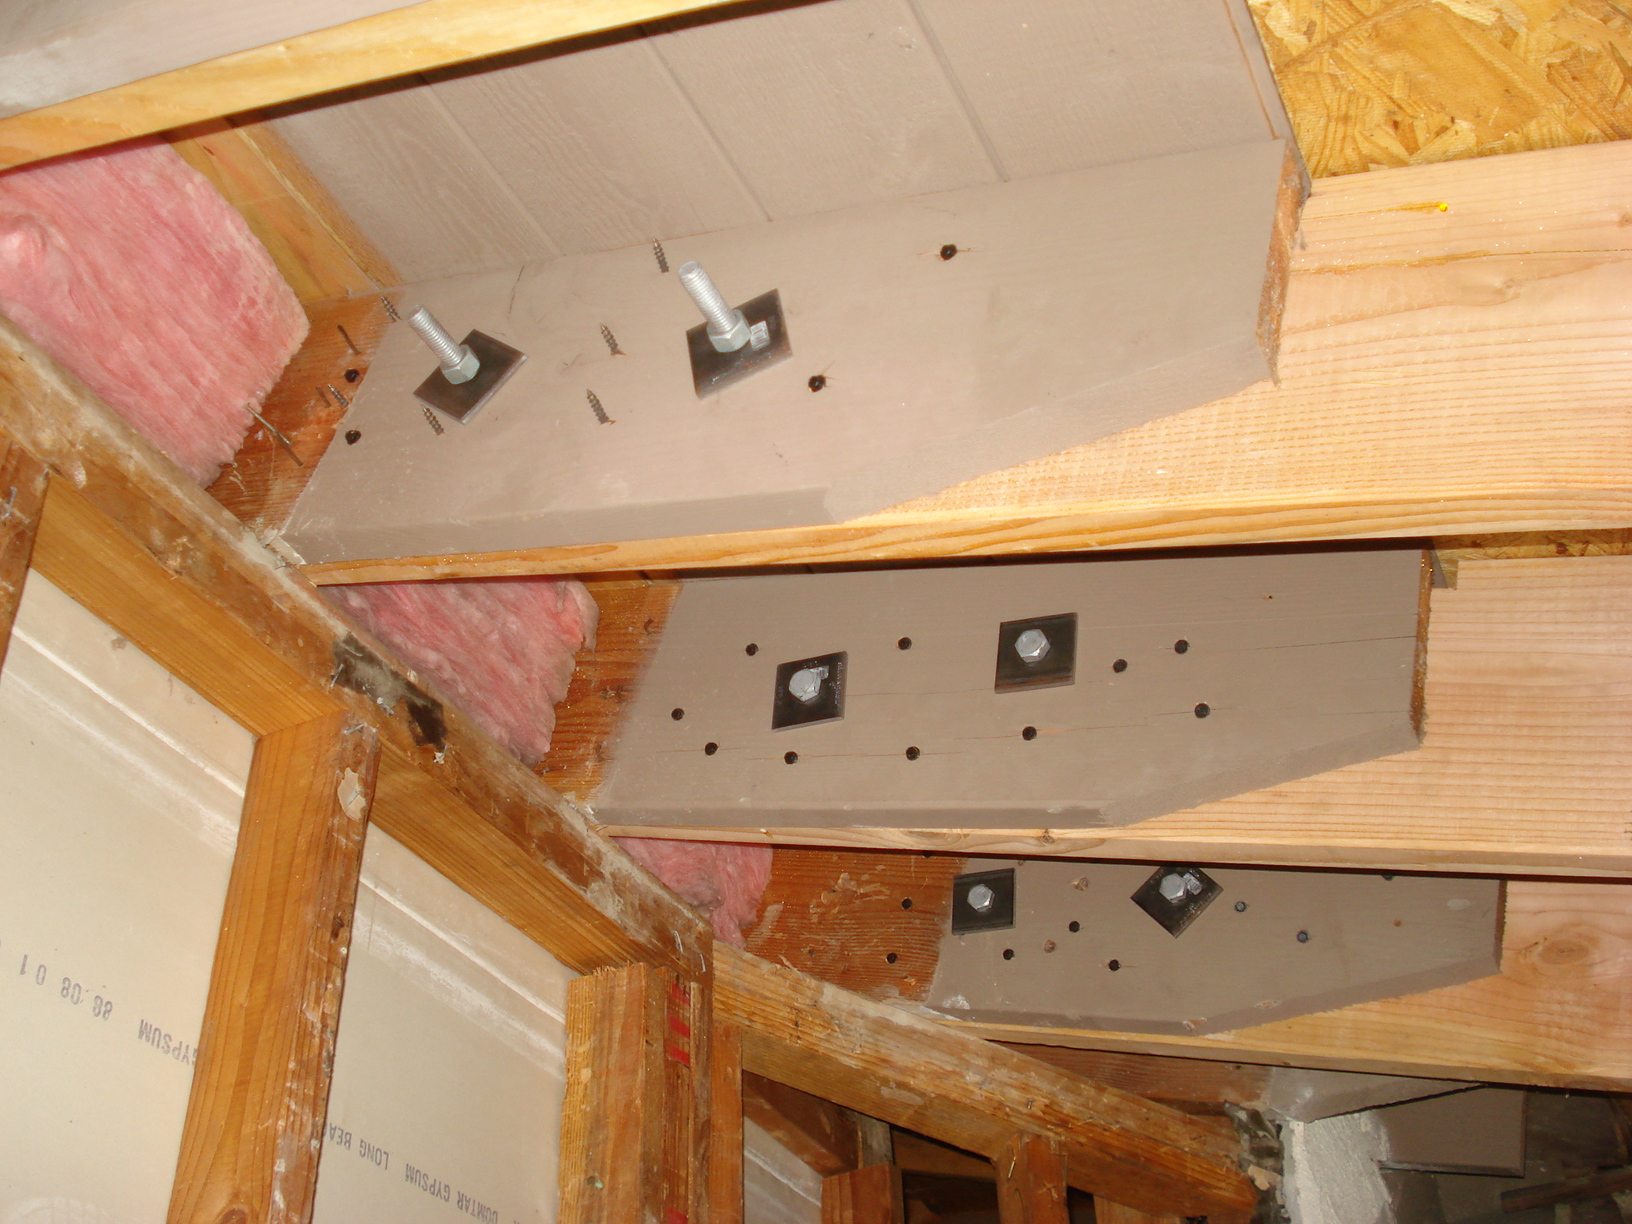 Hi I Extending My Roof Rafters And I Used 2 1 2 Inch Bolts